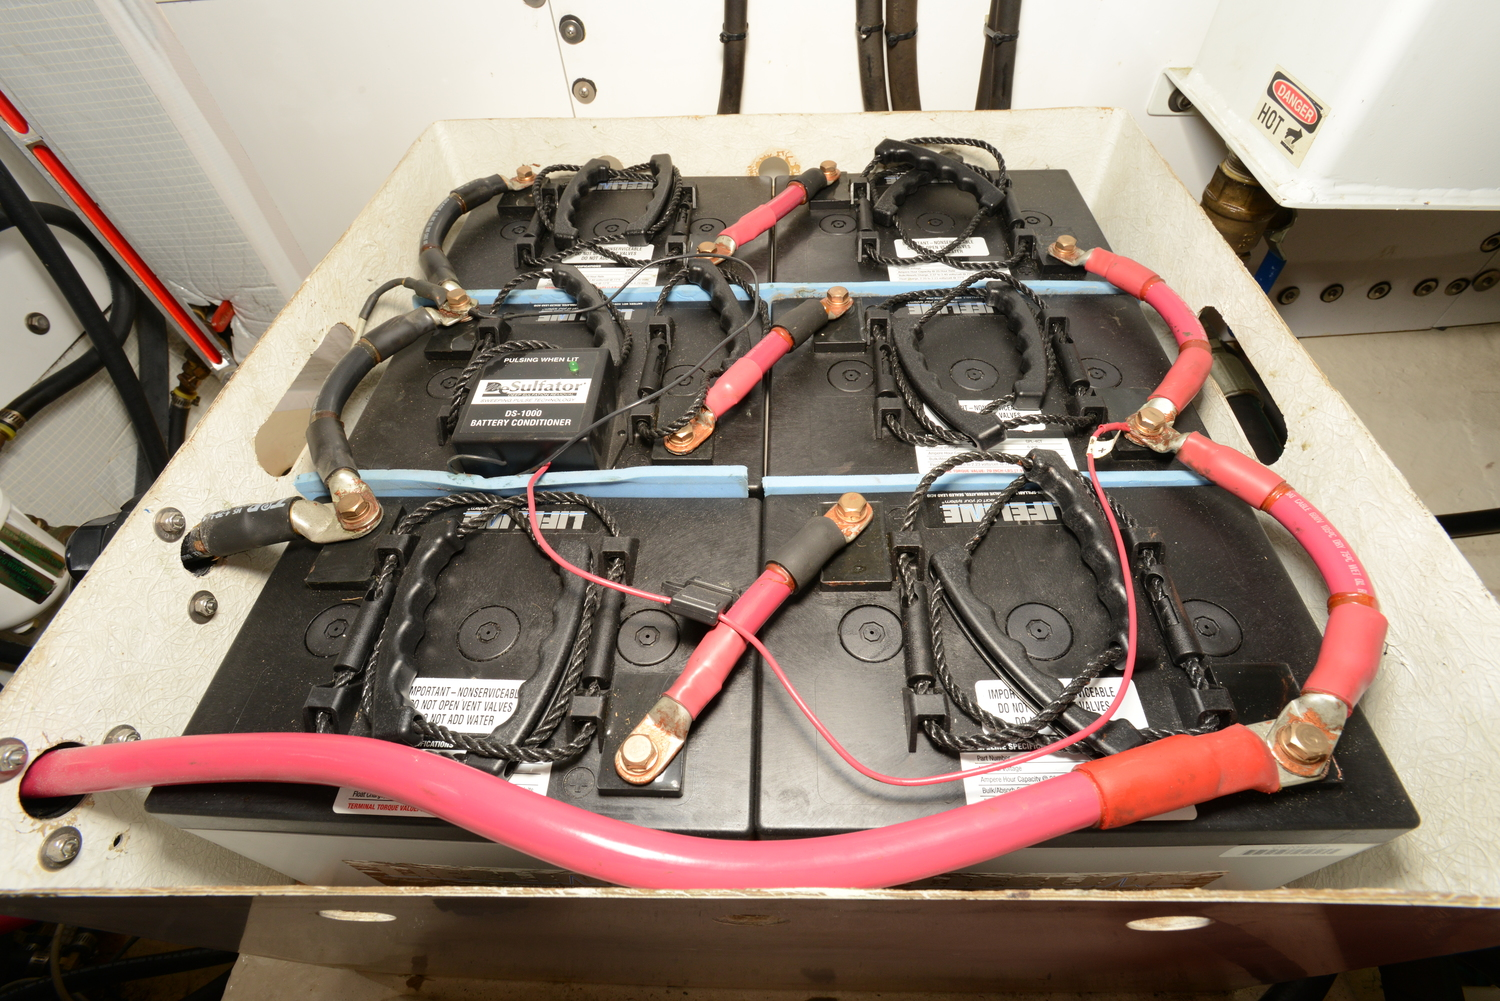 Stout Inverter Chargers Battery Banks House Bank Wiring Prev Next